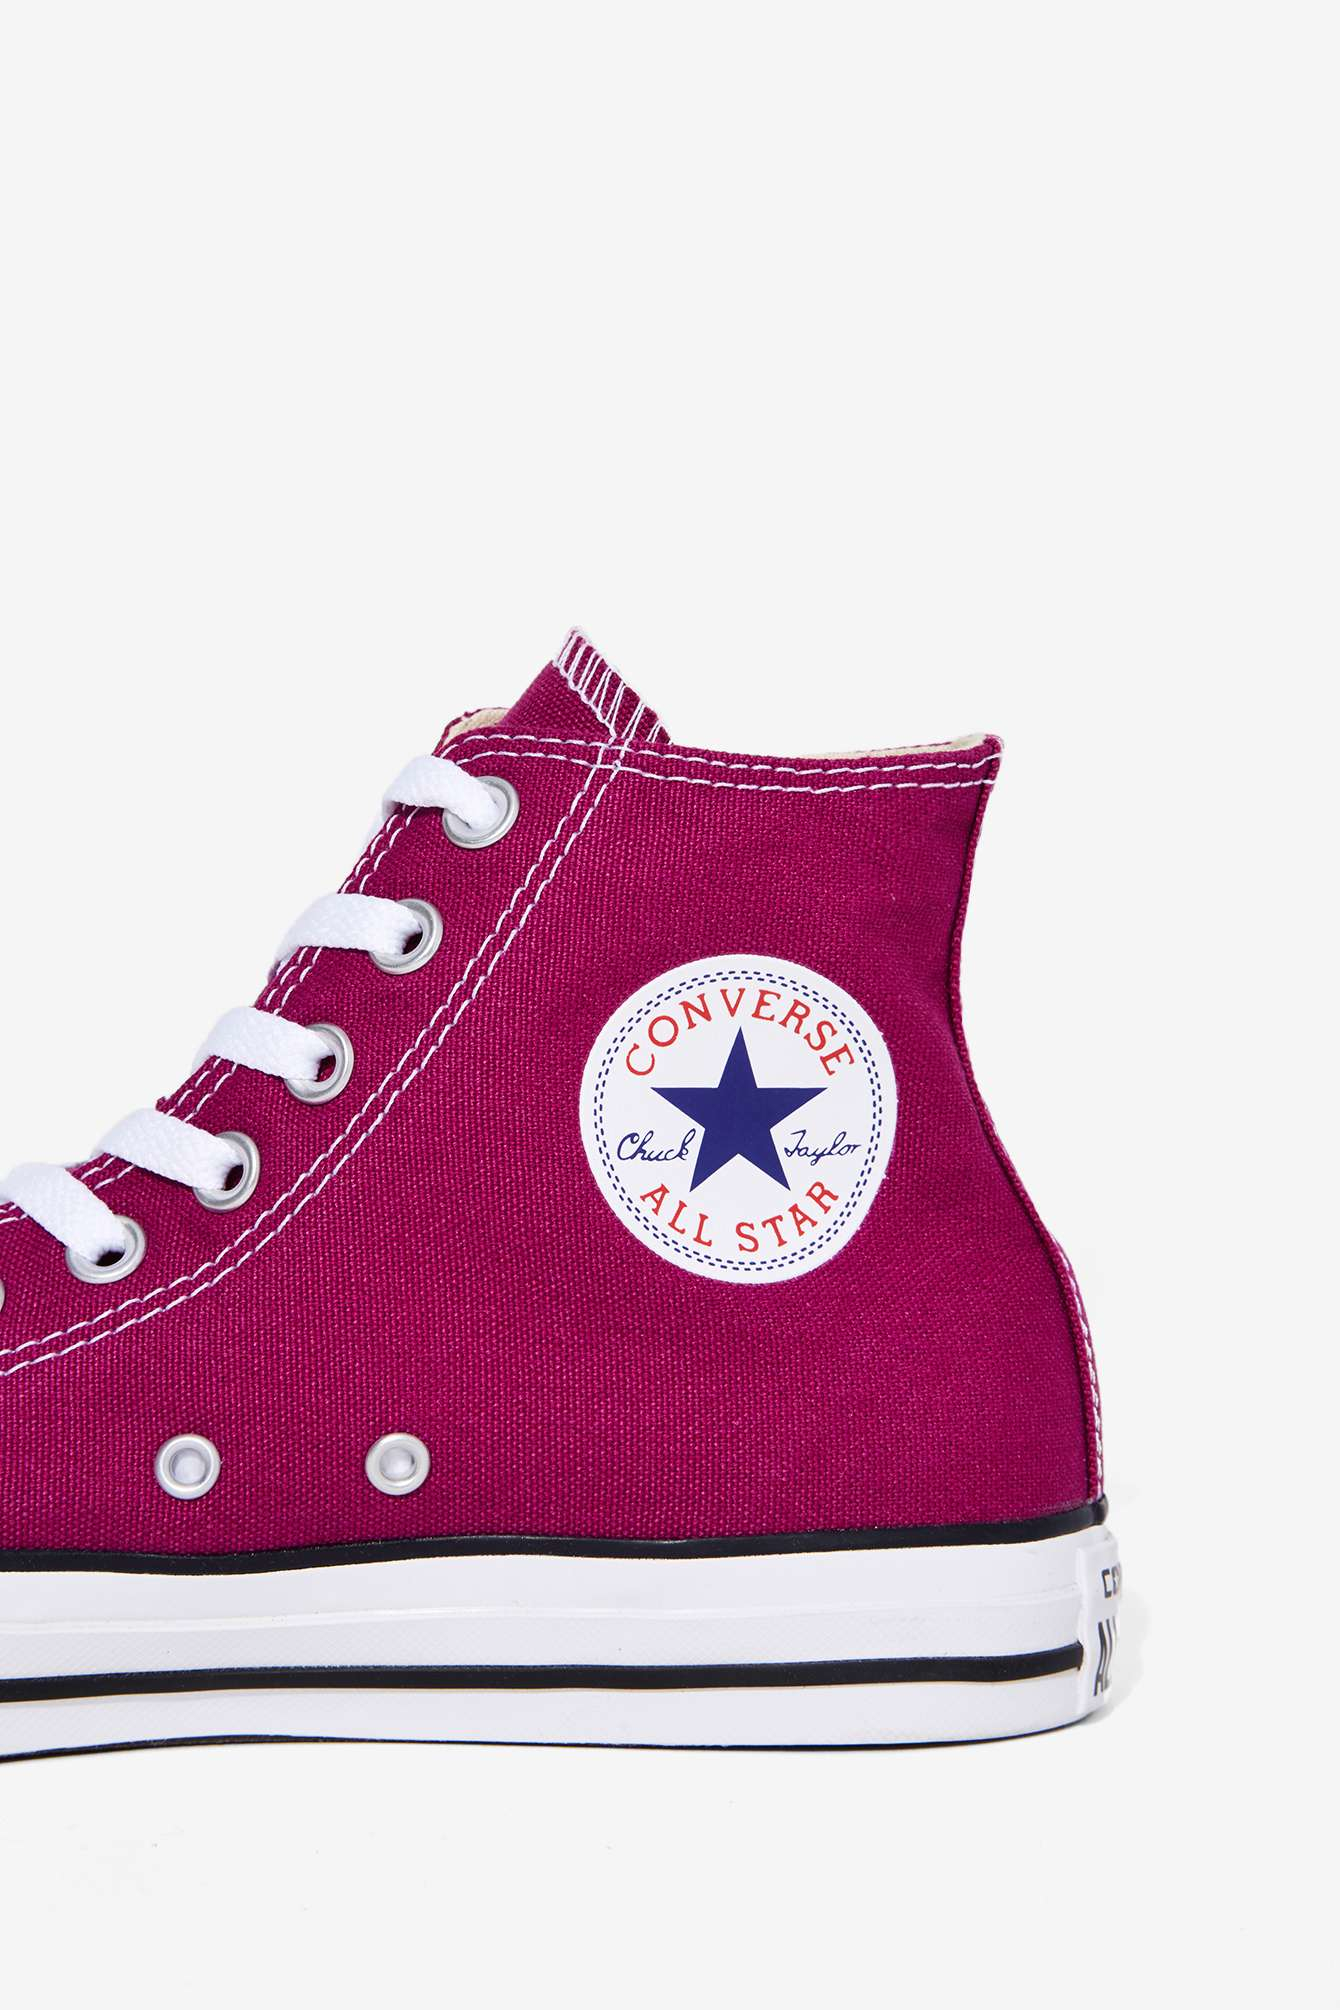 Converse Shoes Pink Sapphire